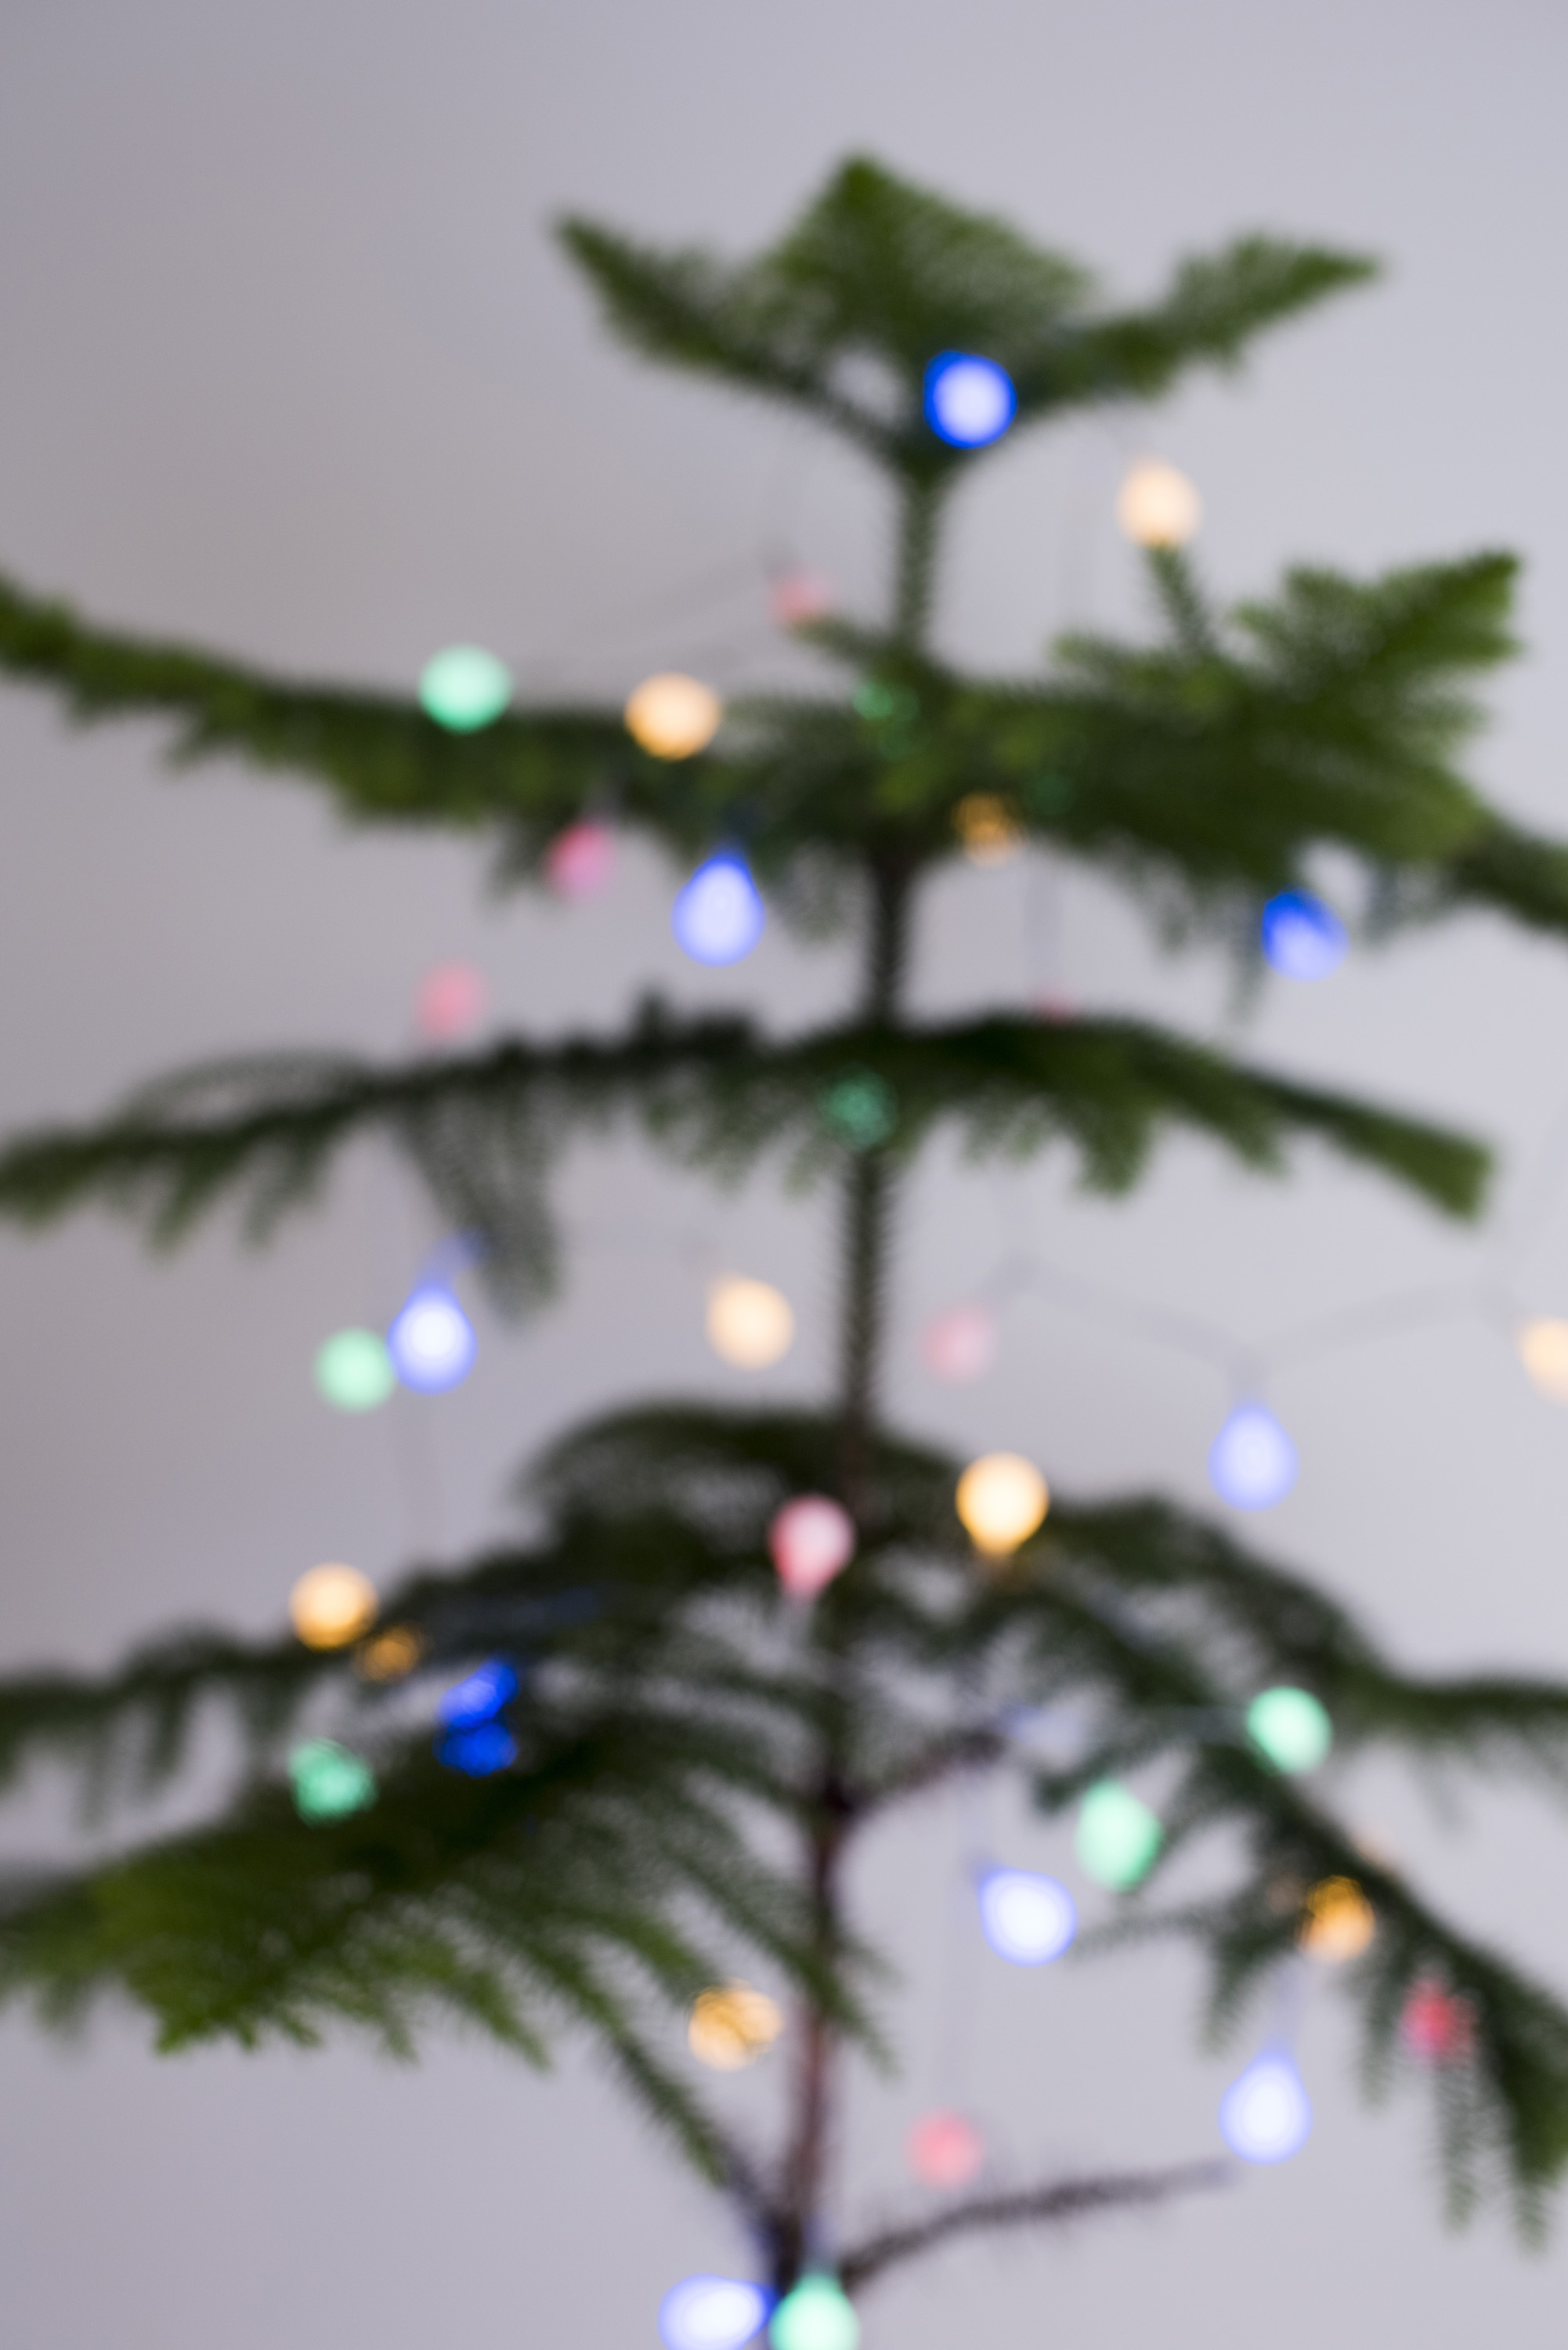 Soft focus natural evergreen pine or spruce Christmas tree decorated with shining colorful round lights